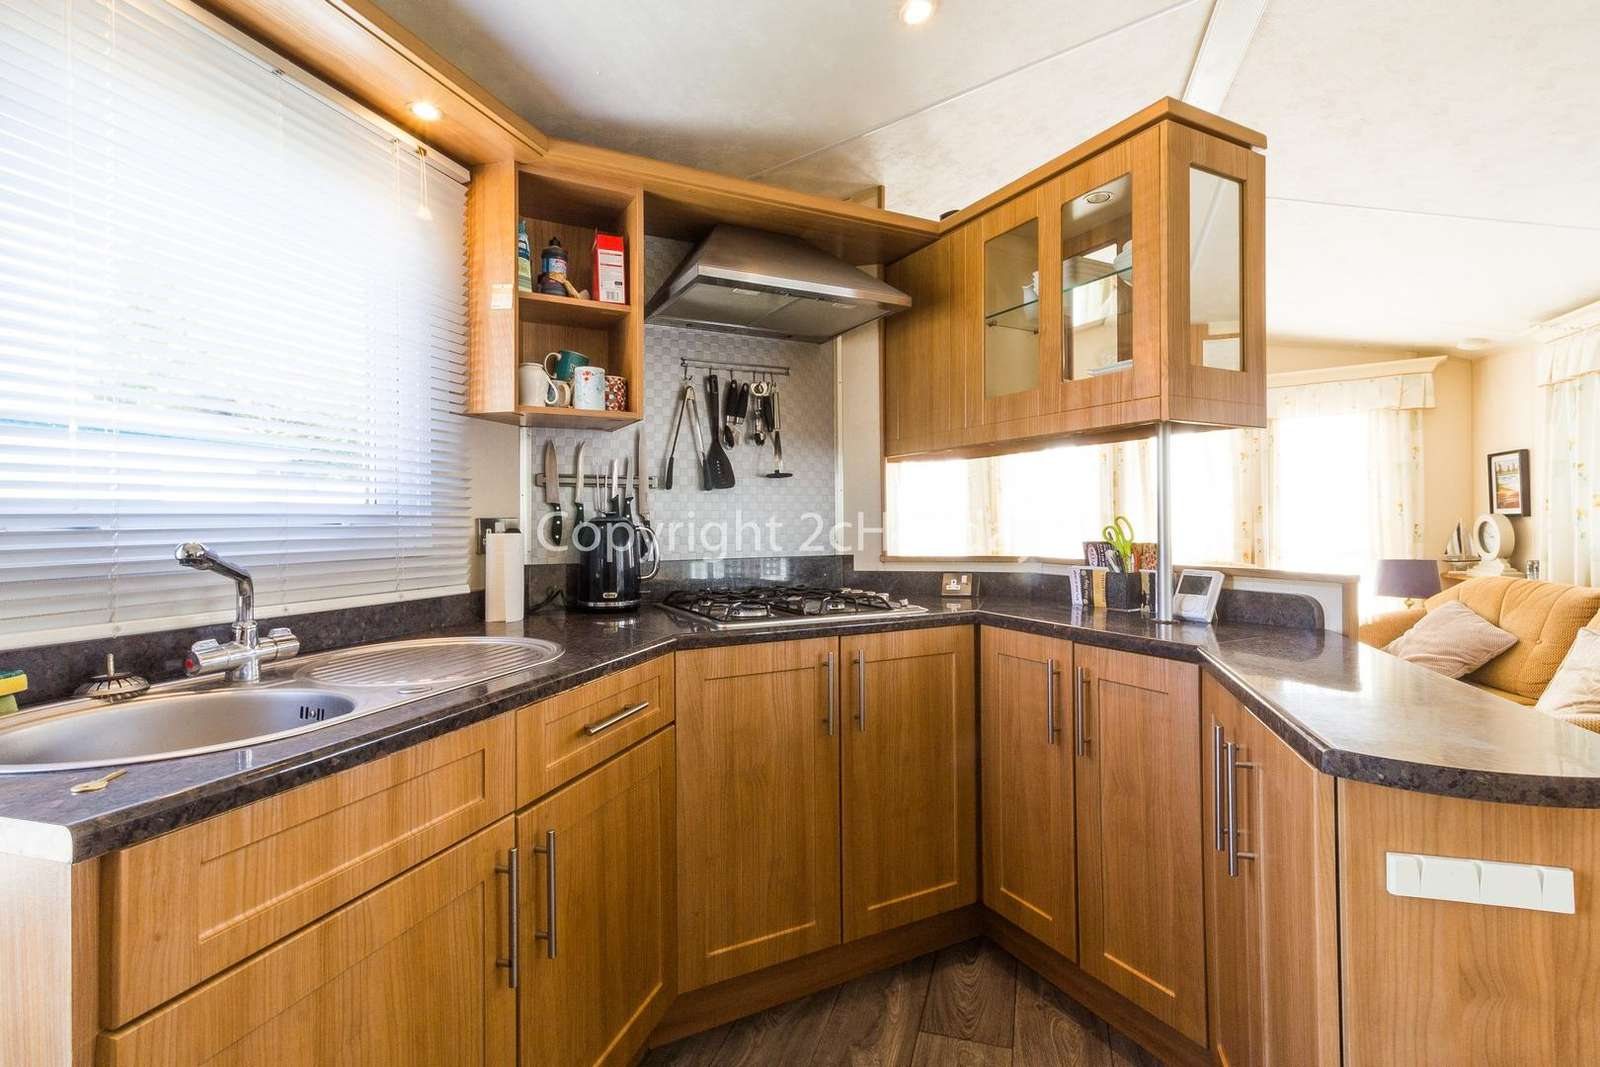 Great size kitchen with a built in oven!